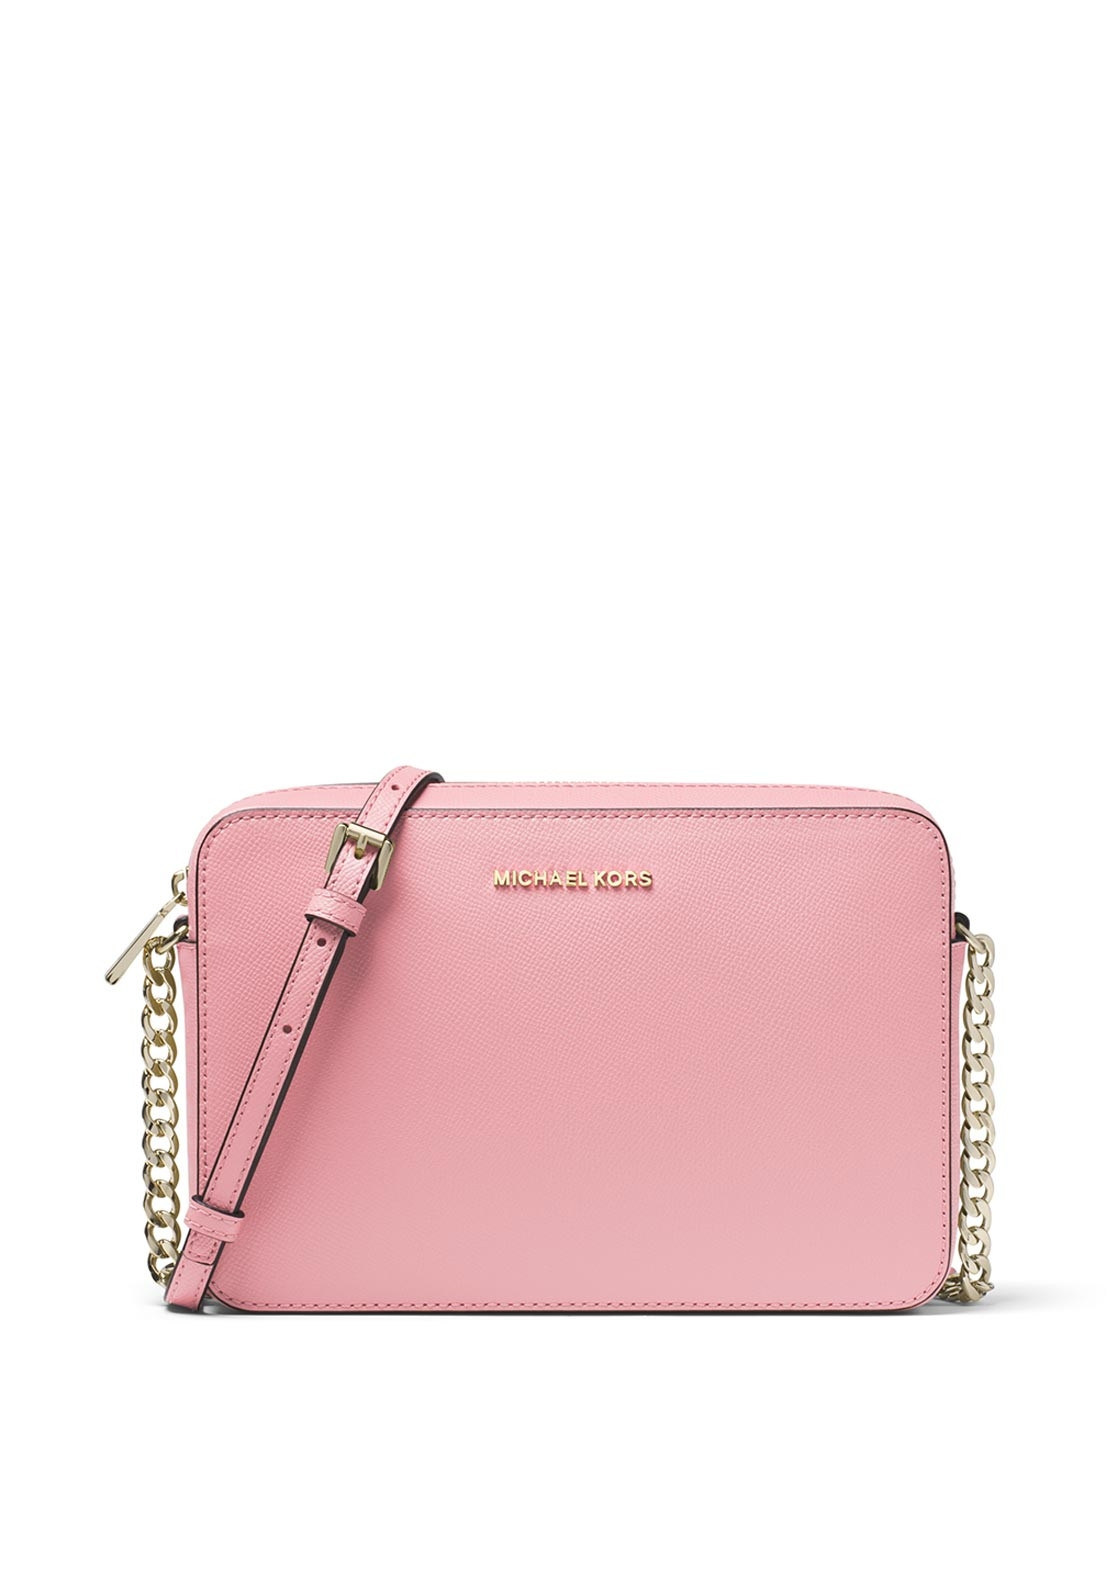 d8bbde4c2b62 Be the first to review this product. MICHAEL Michael Kors Jet Set Saffiano  Leather Crossbody Bag, Carnation